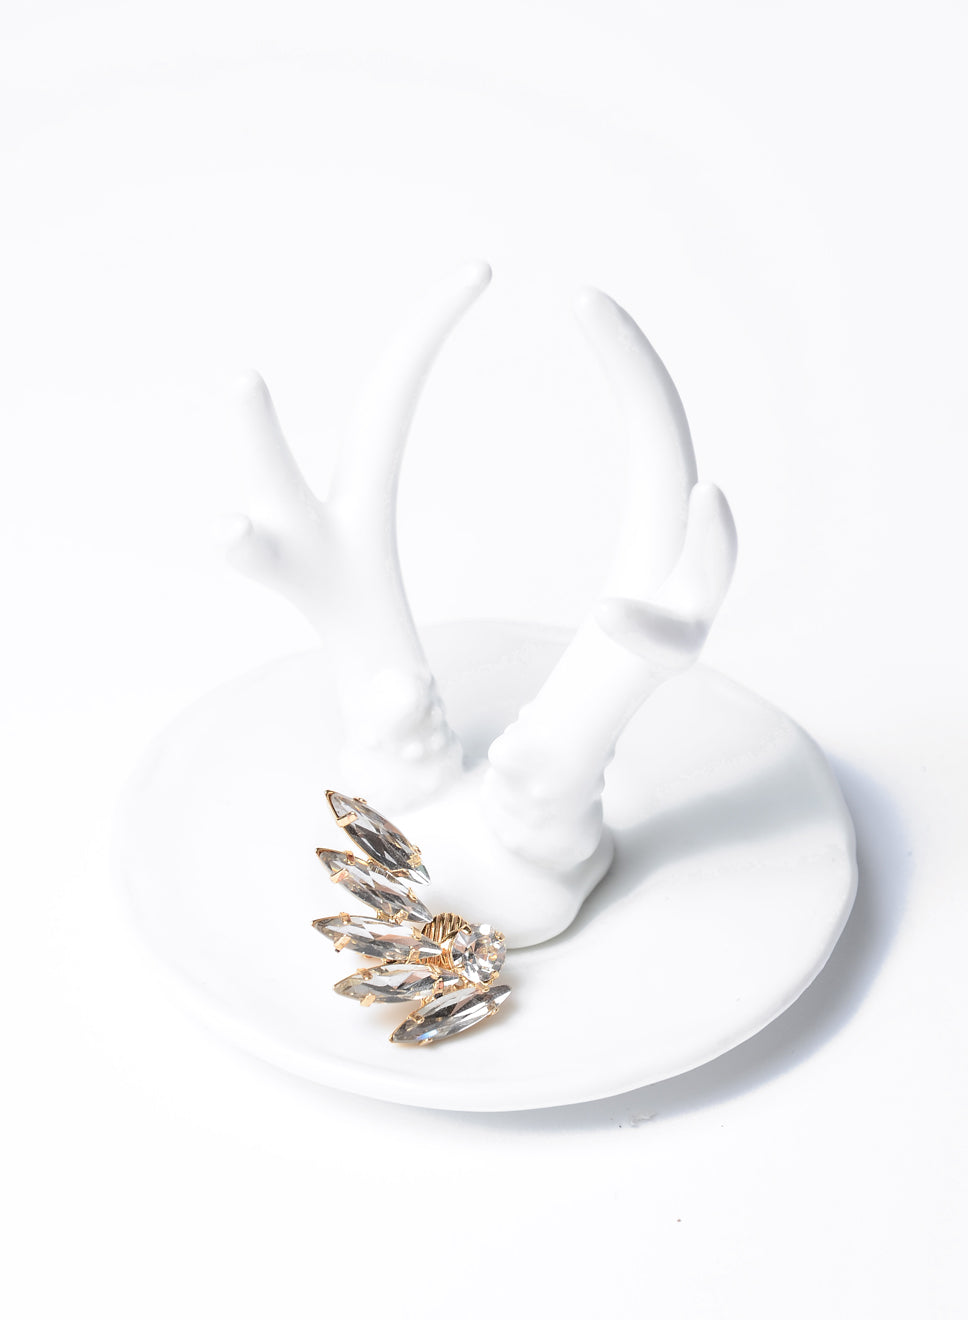 LILOU MINI WING EAR CUFF (GOLD) at $ 10.00 only sold at And Well Dressed Online Fashion Store Singapore